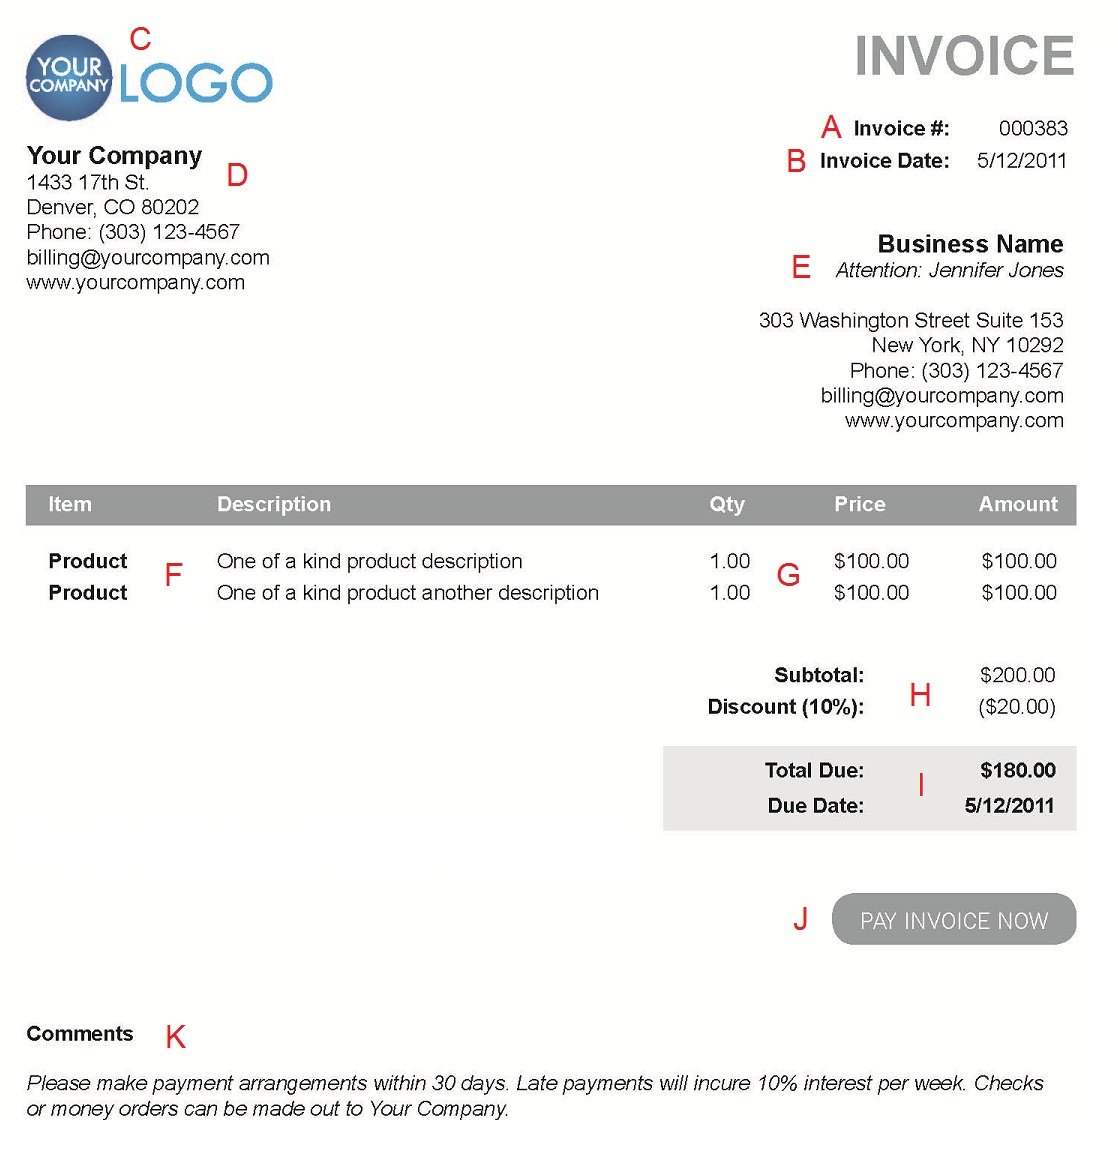 Coolmathgamesus  Pretty The  Different Sections Of An Electronic Payment Invoice With Likable A  With Archaic Filing Receipt Also Cash Receipt Book In Addition Aa Com Receipts And Printable Sales Receipt As Well As  Hand Receipt Additionally Customized Receipt Book From Paysimplecom With Coolmathgamesus  Likable The  Different Sections Of An Electronic Payment Invoice With Archaic A  And Pretty Filing Receipt Also Cash Receipt Book In Addition Aa Com Receipts From Paysimplecom